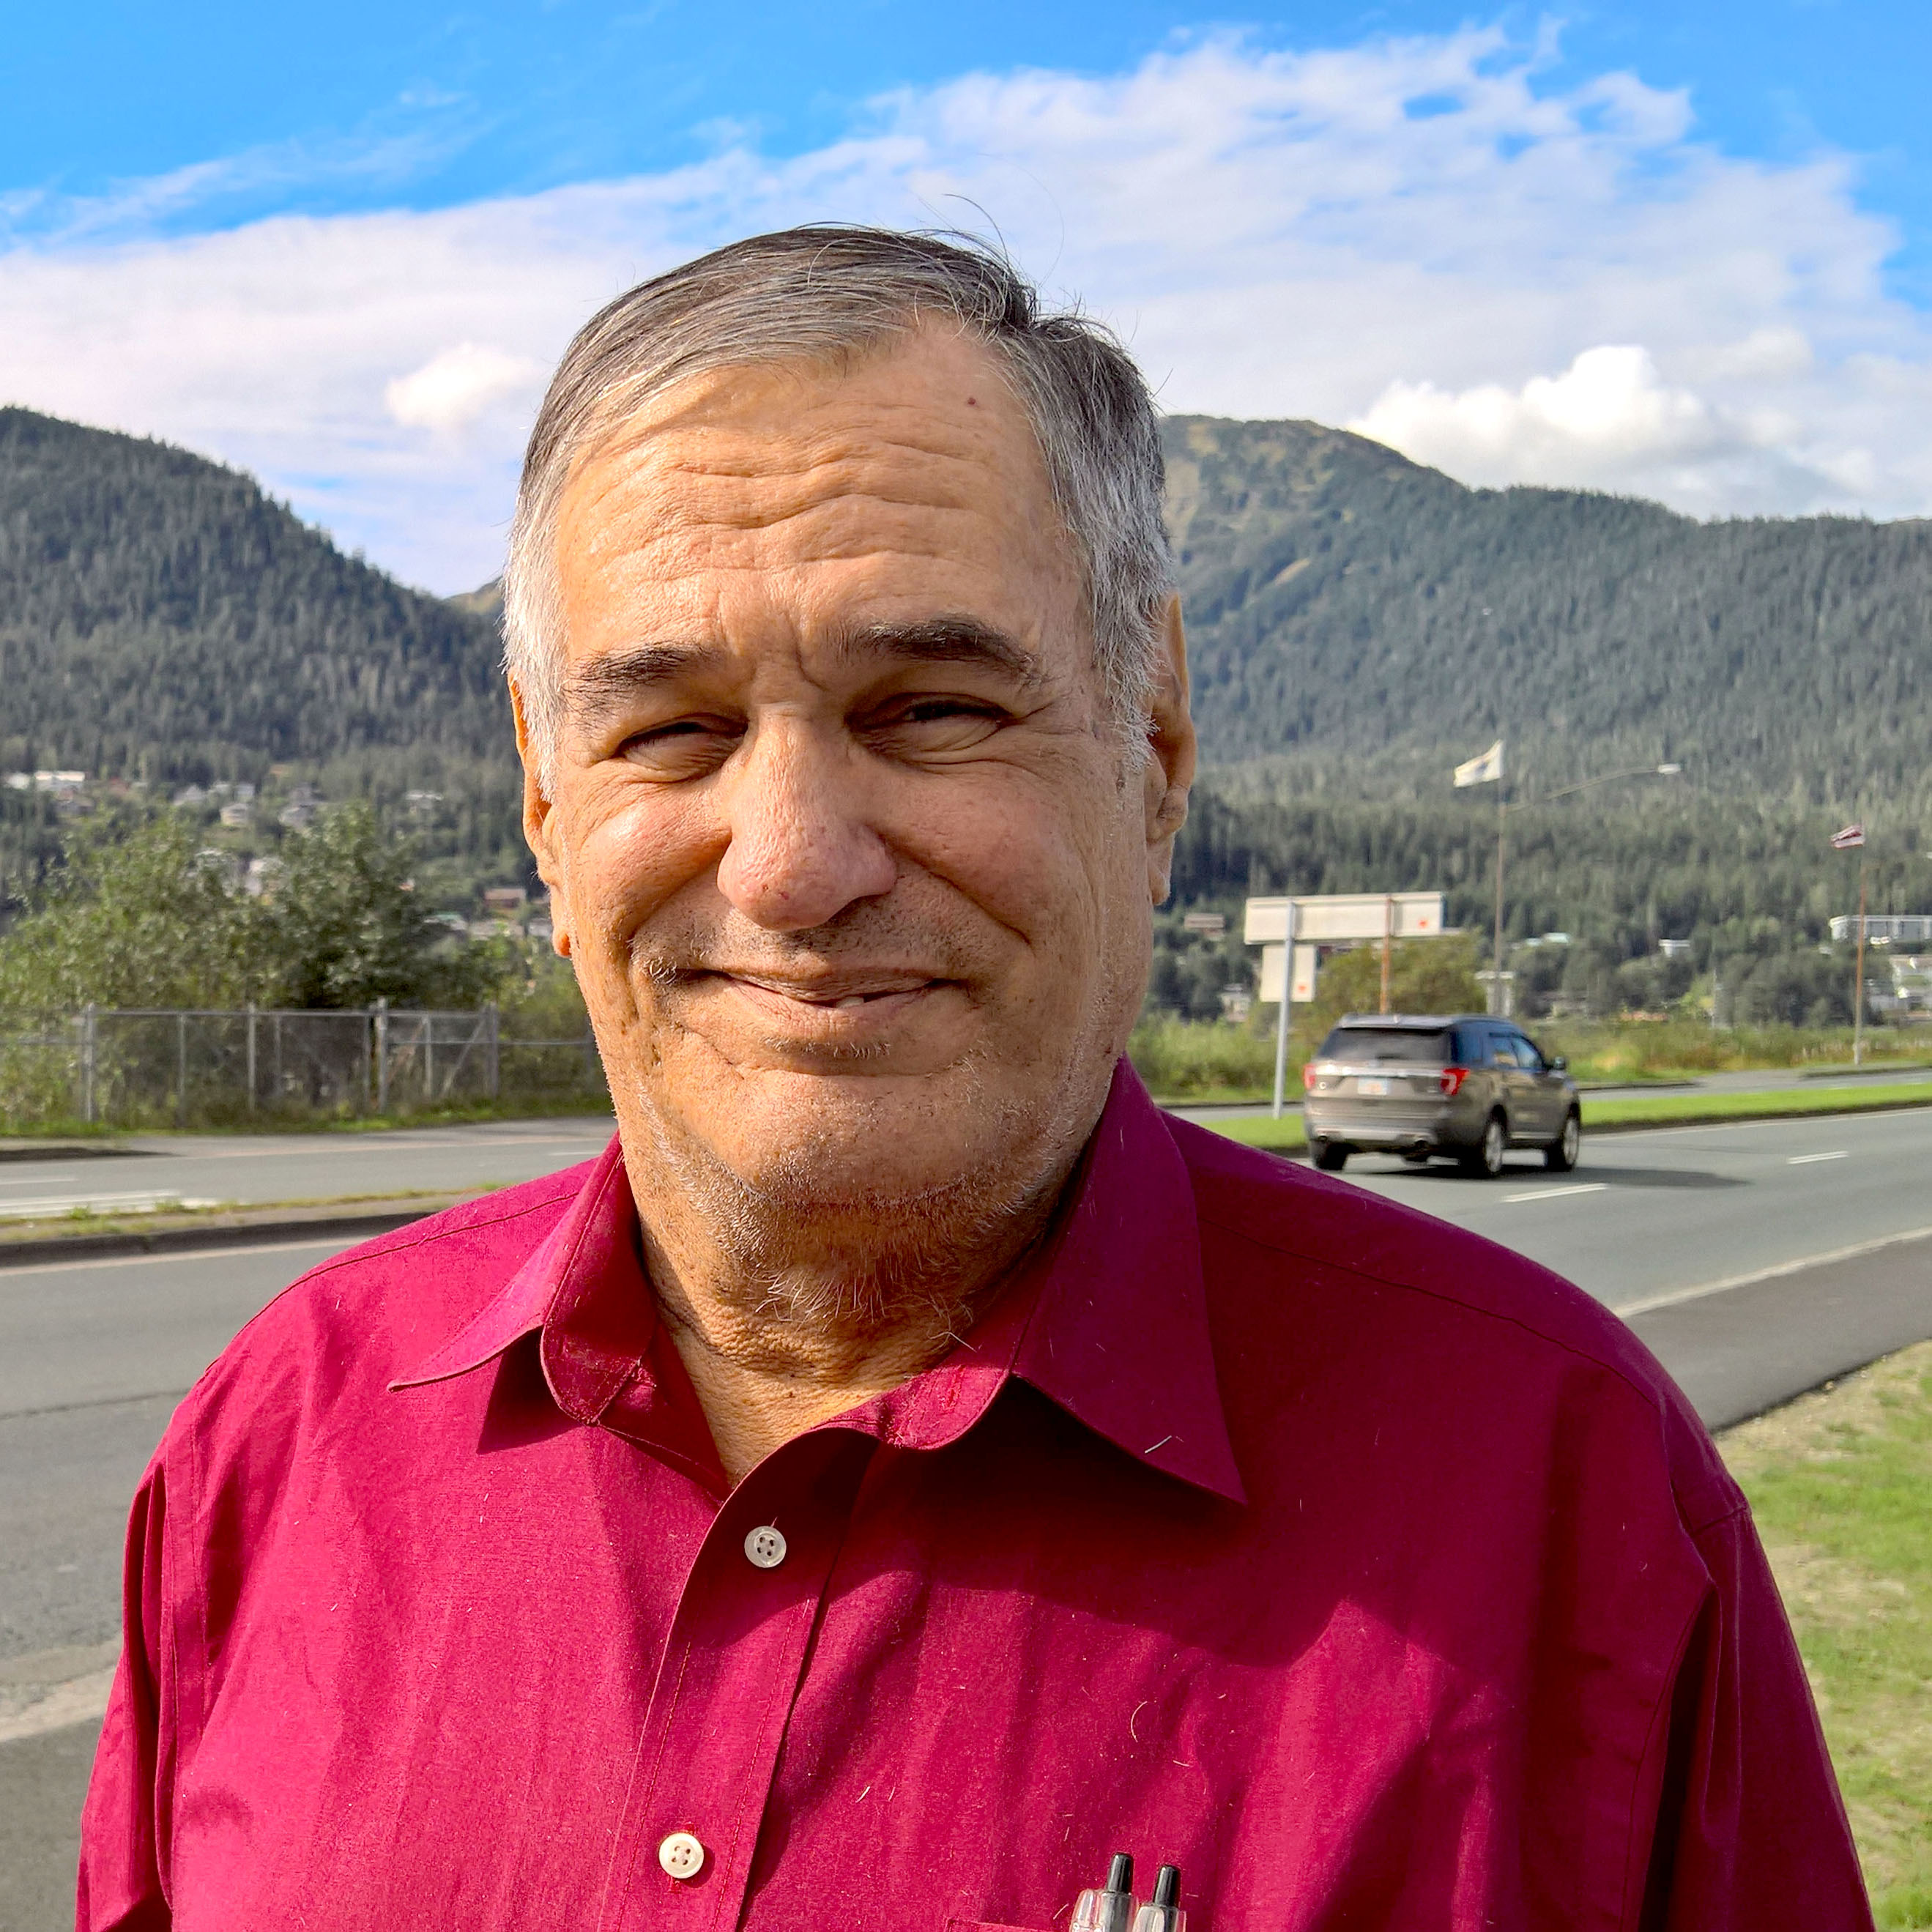 William Quayle poses for a photo outside KTOO, Sept. 2, 2016. Quayle is a candidate for Juneau Assembly. (Photo by Jeremy Hsieh/KTOO)